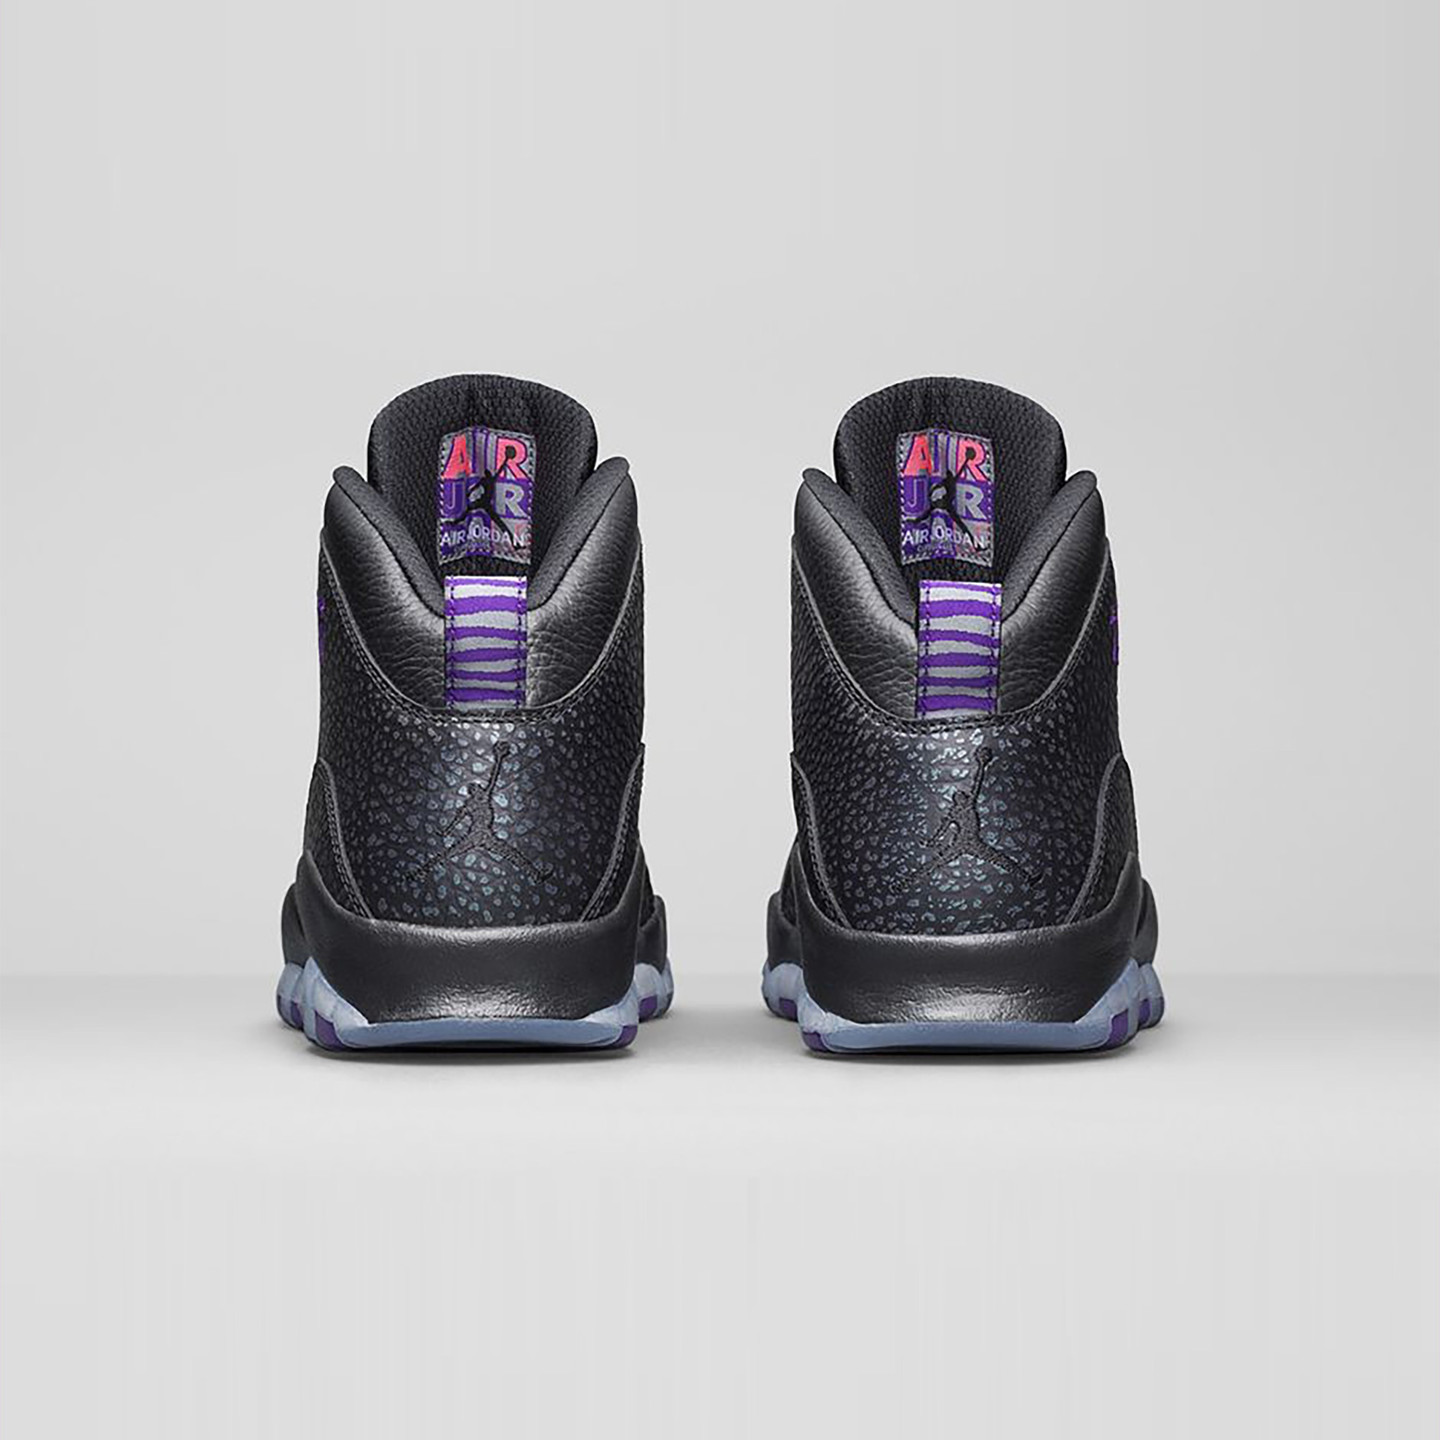 Jordan Air Jordan 10 Retro 'Paris' Black / Fierce Purple 310805-018-47.5